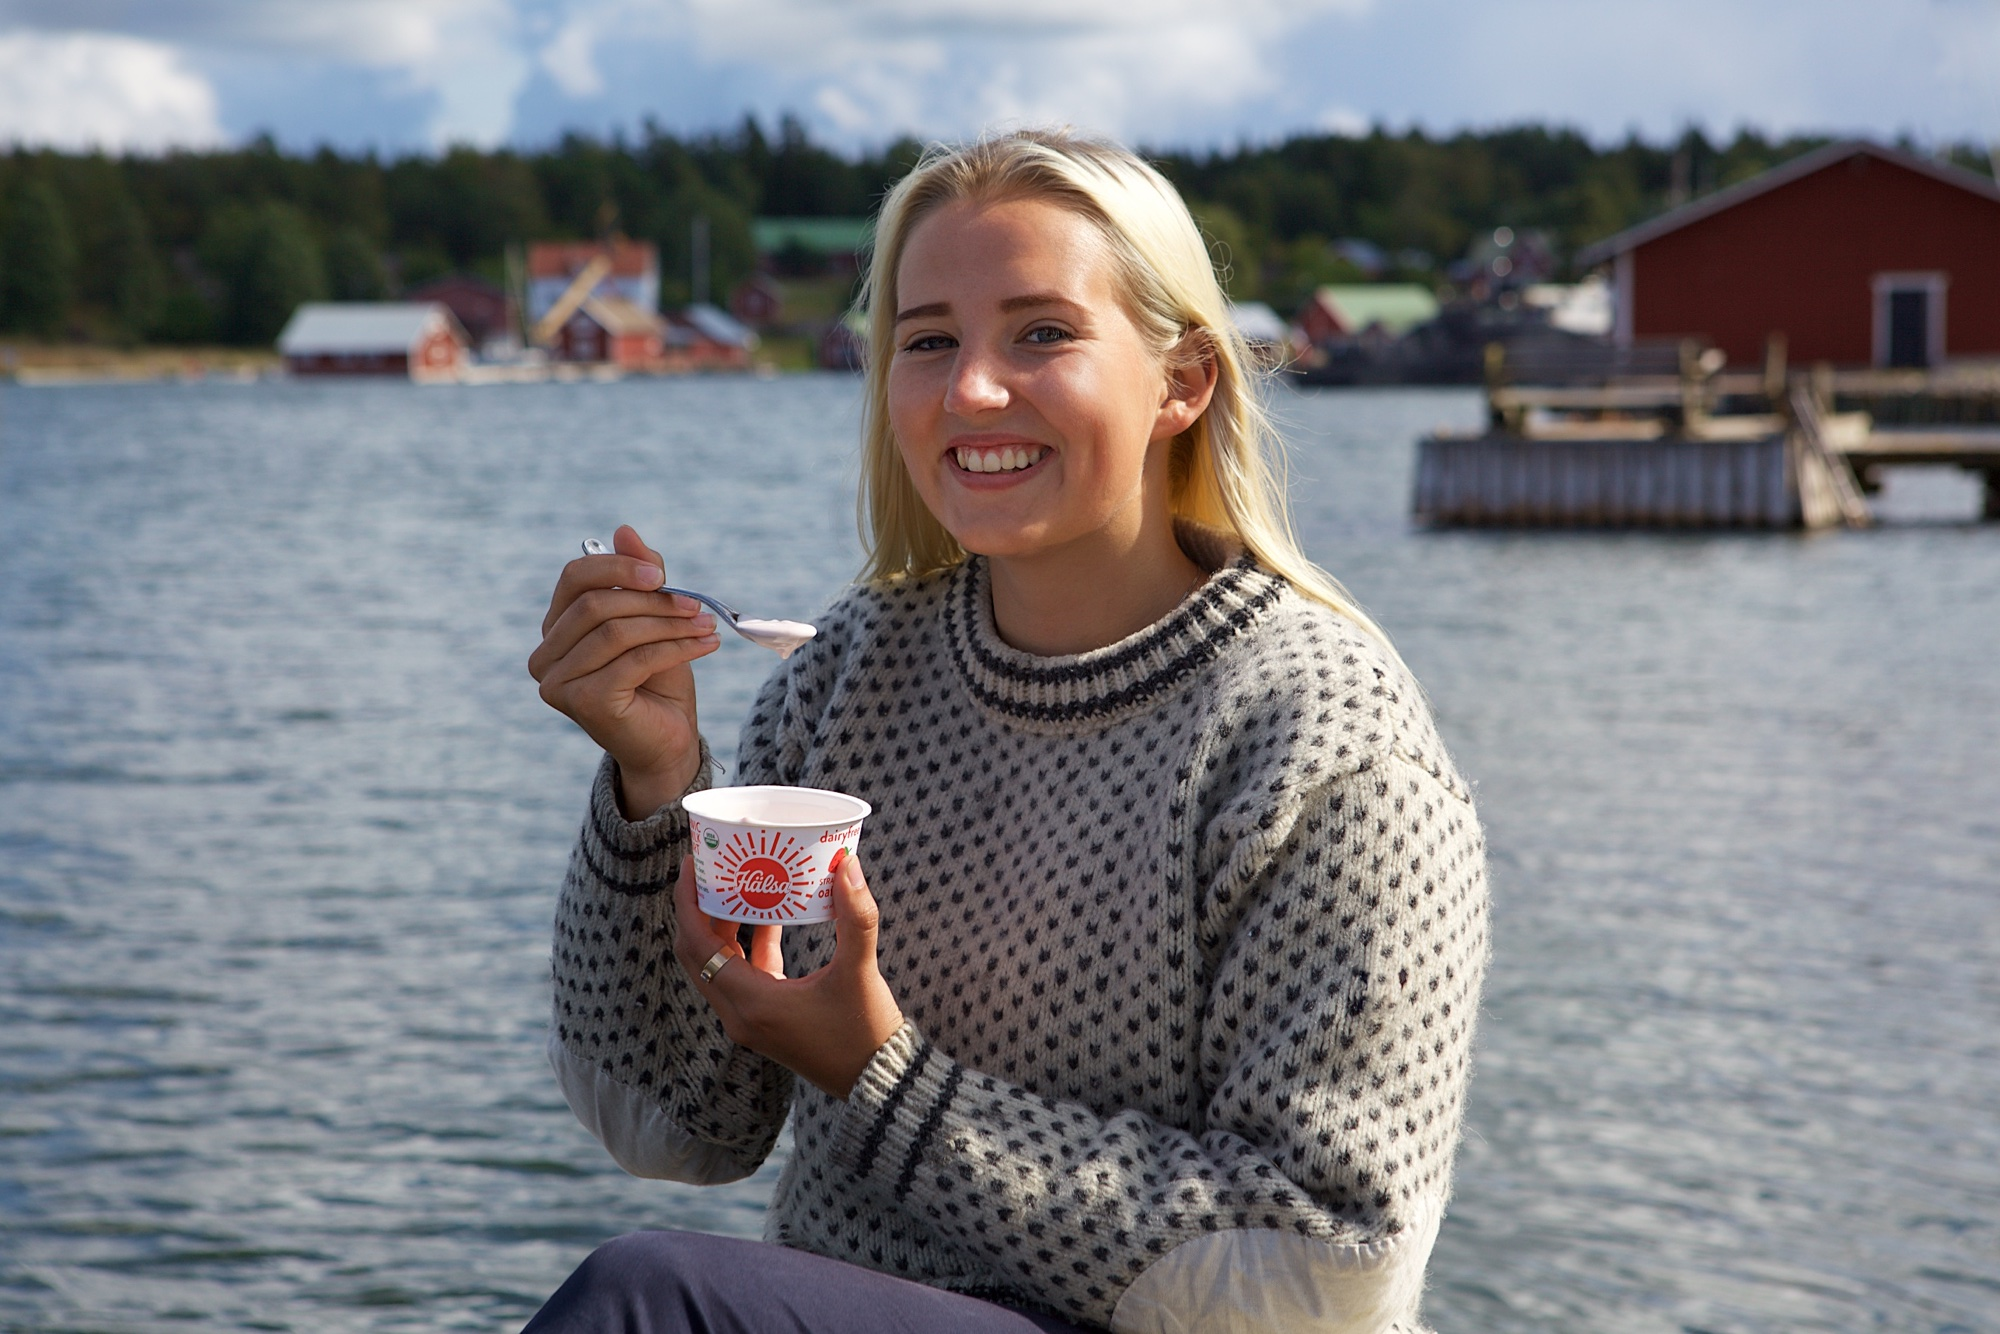 Hälsa Organic Oatmilk Yogurt - No Added Sugar, oat milk, oat yogurt, oatgurt, organic, halsa, 100% clean